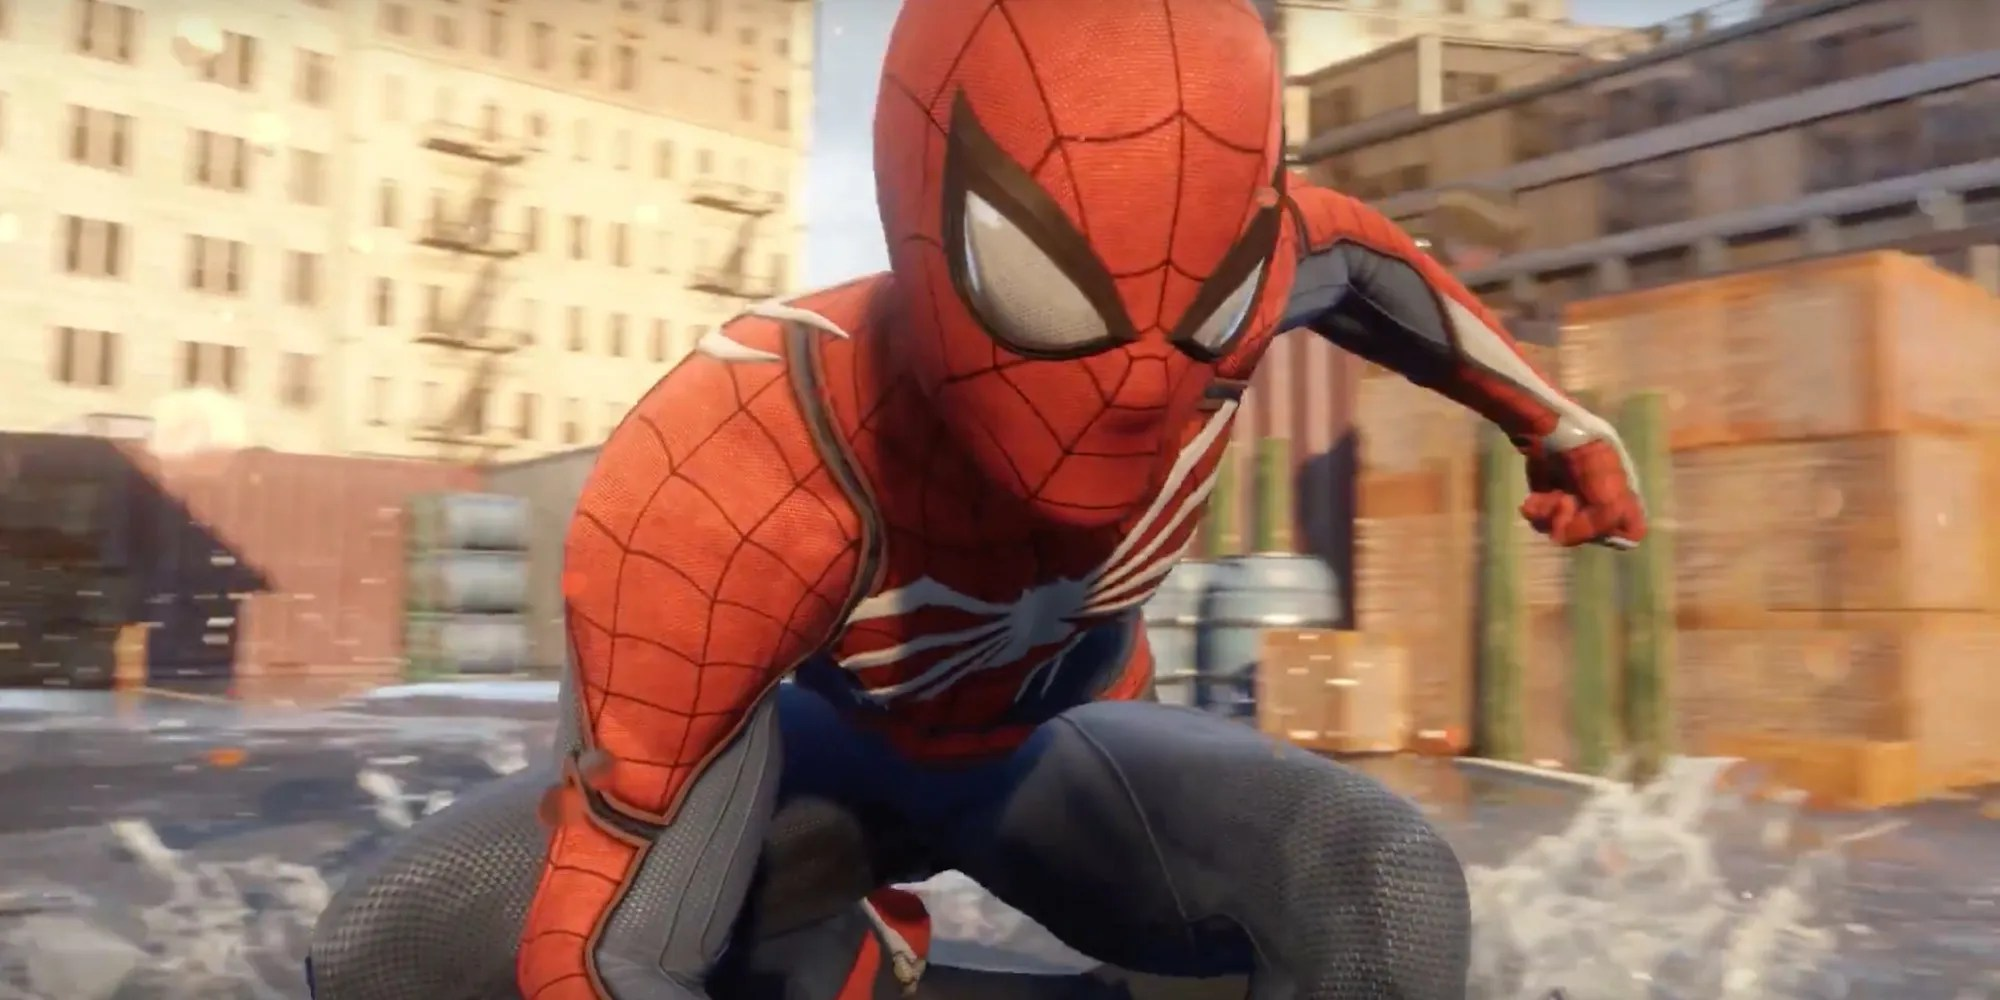 Spiderman Games Spider Man Ps4 Game Trailer Peter Parker Meets Insomniac